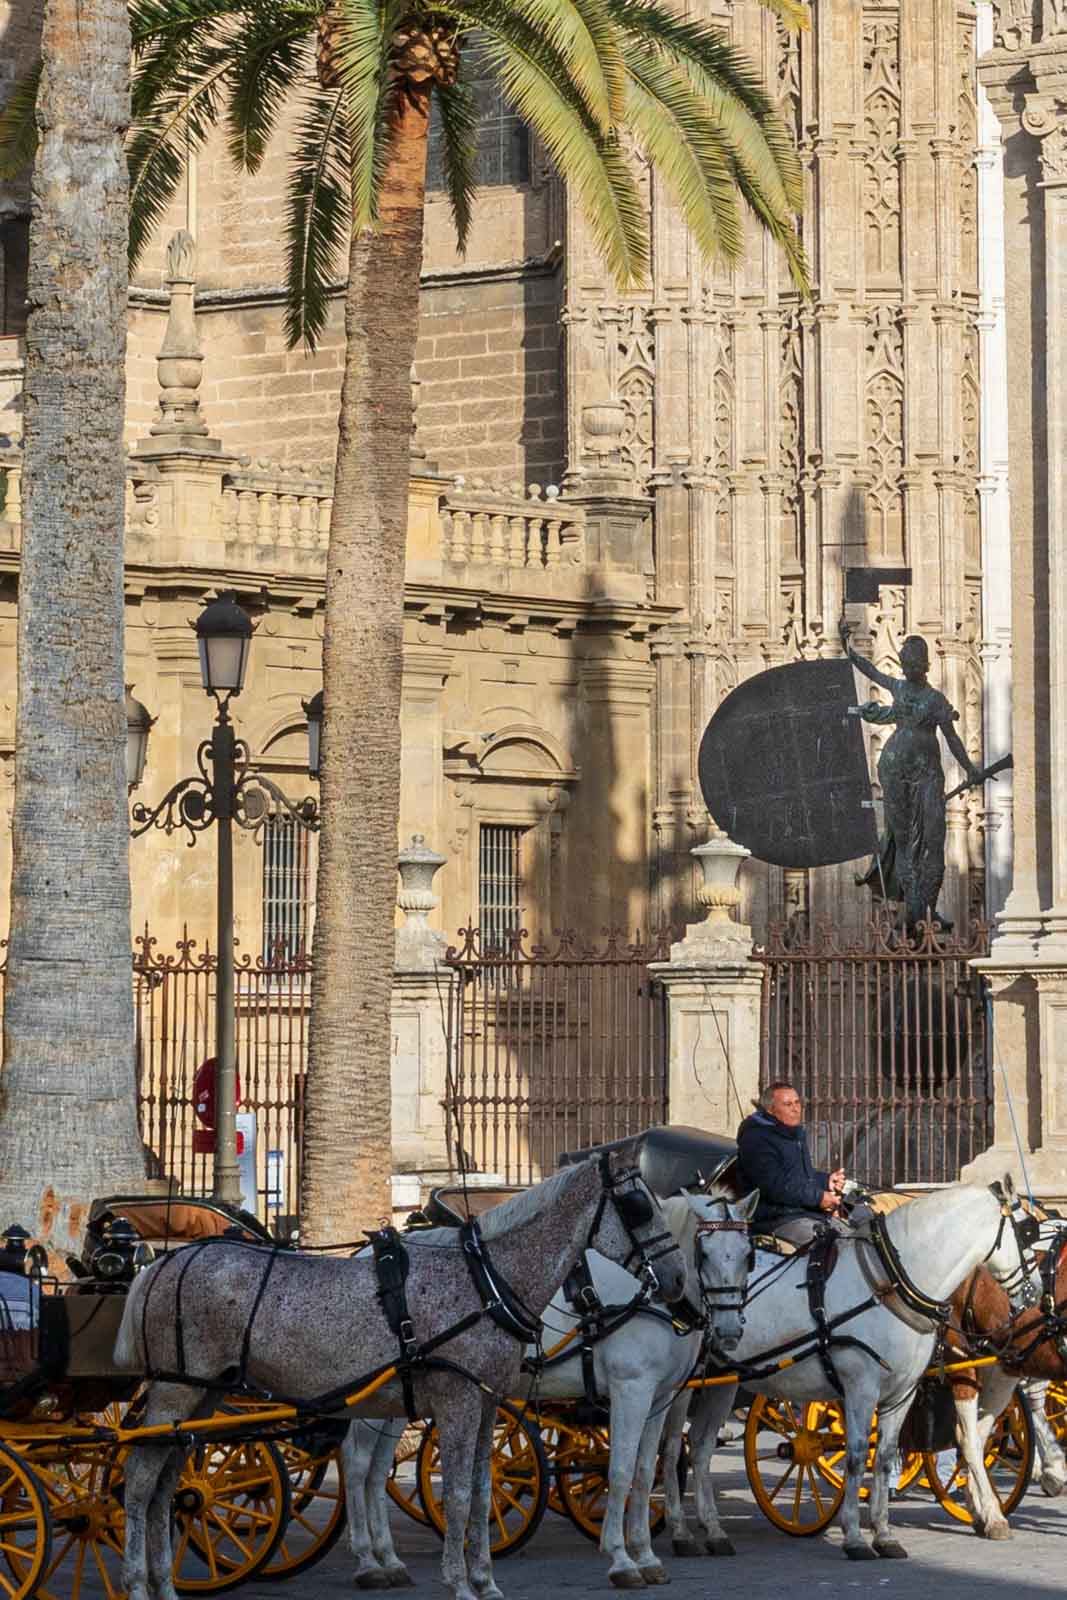 Andalusia, Andalusien, Cathedral, Church, Kathedrale, Kirche, Sevilla, Seville, Spain, Spanien